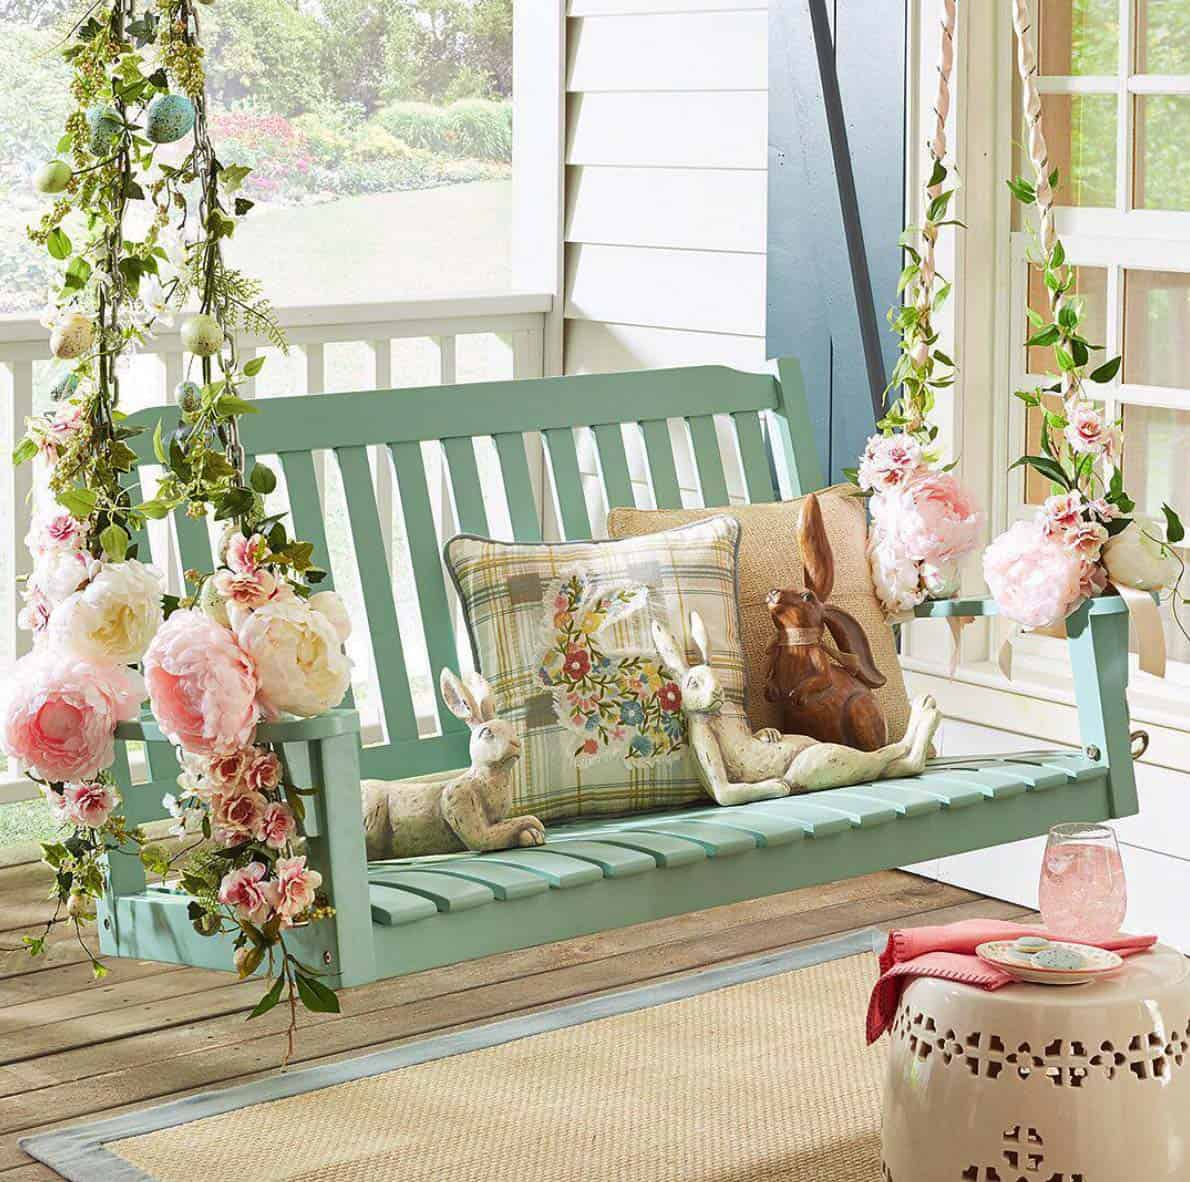 Floral Embellished Porch Swing